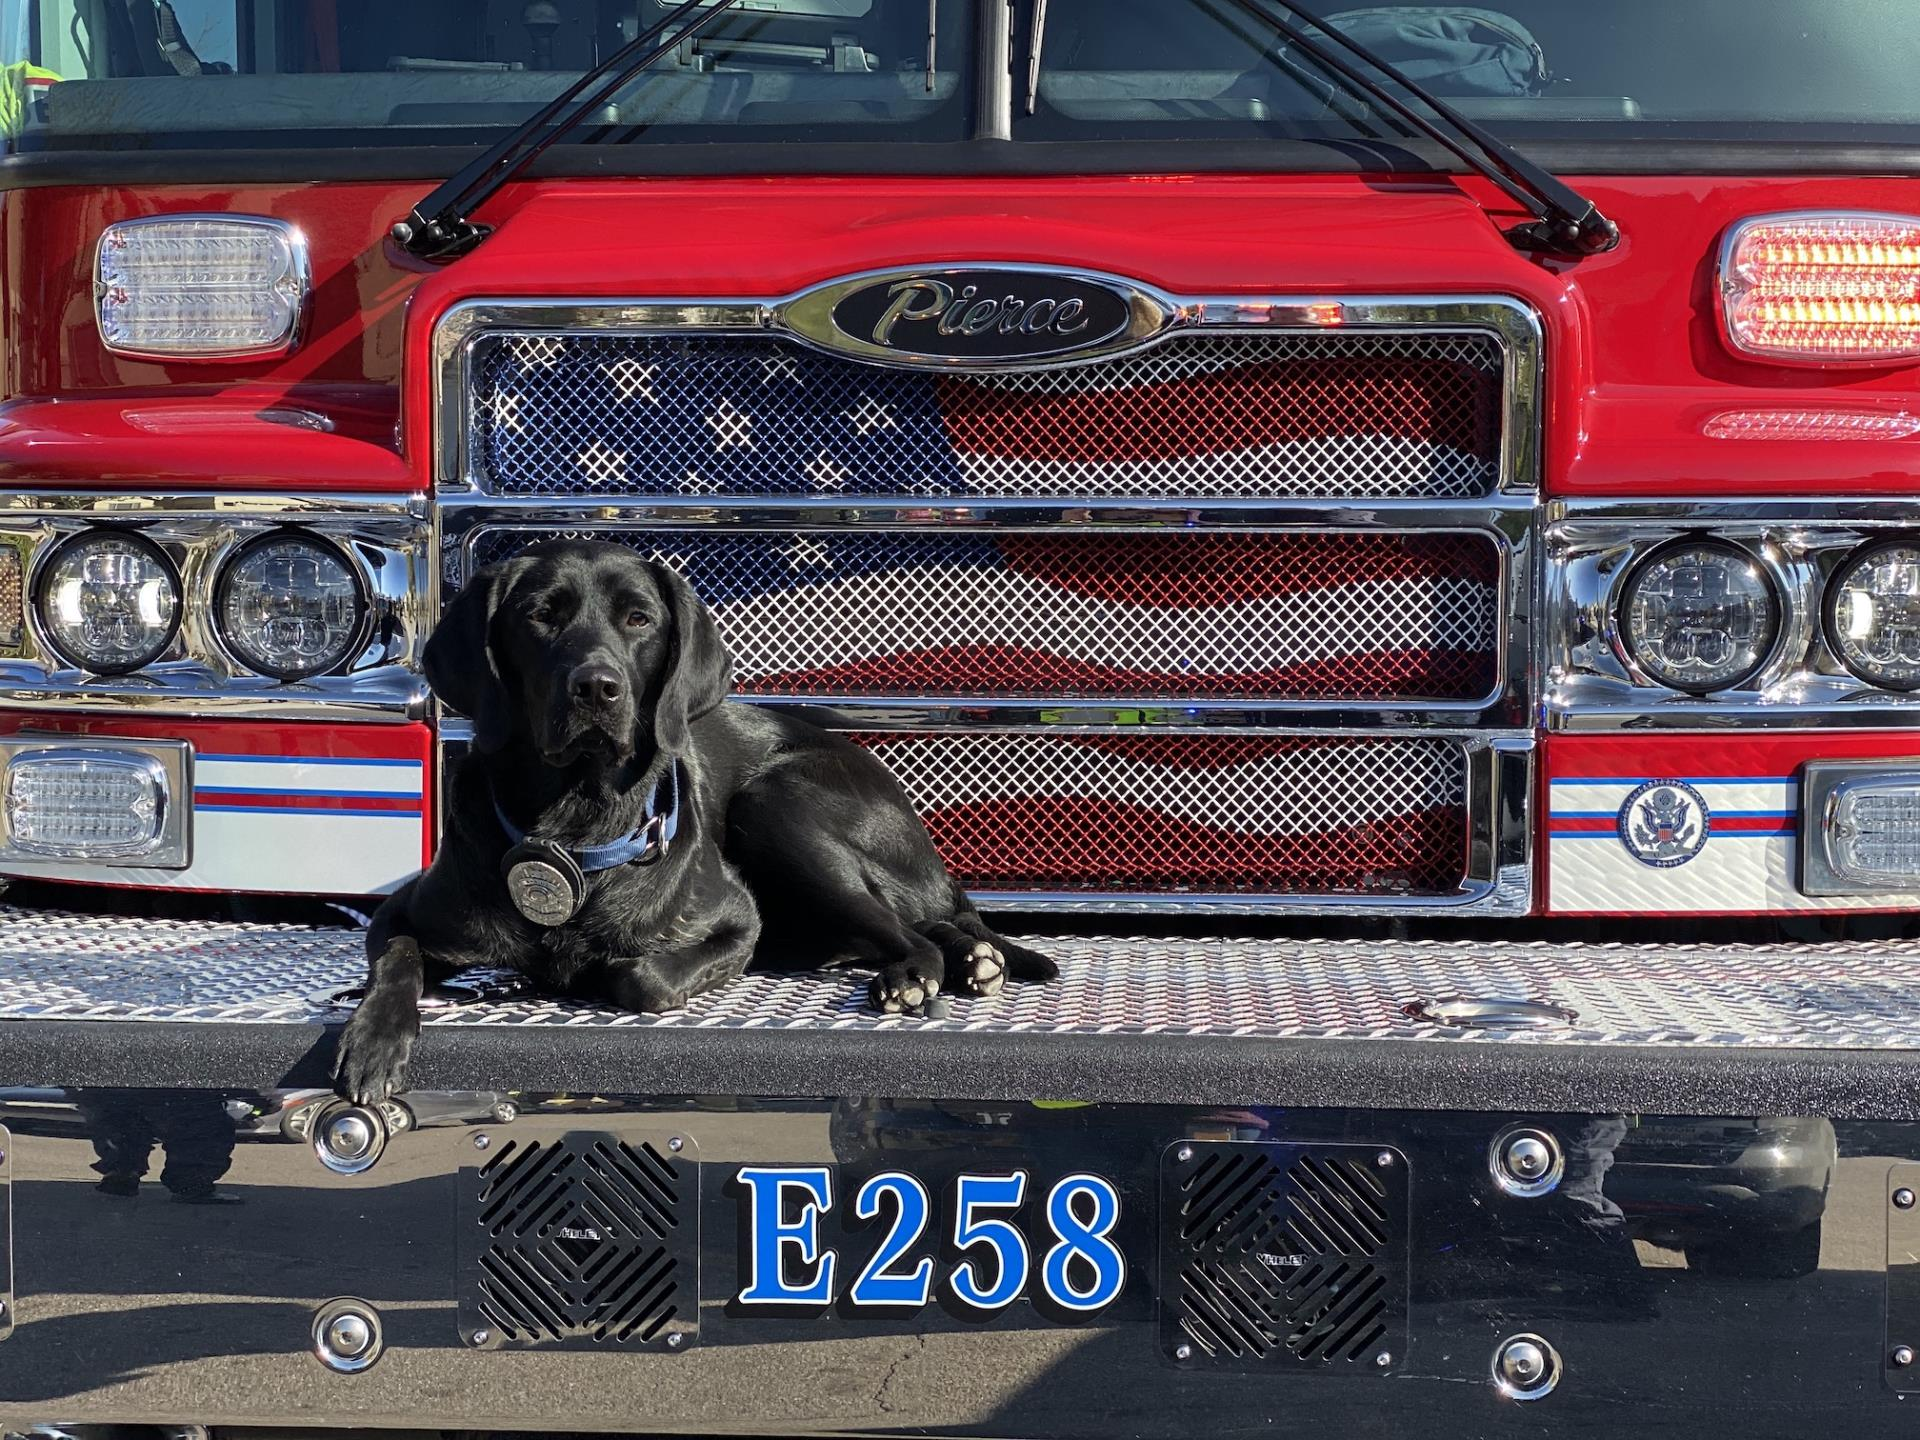 Black Labrador on Fire Engine